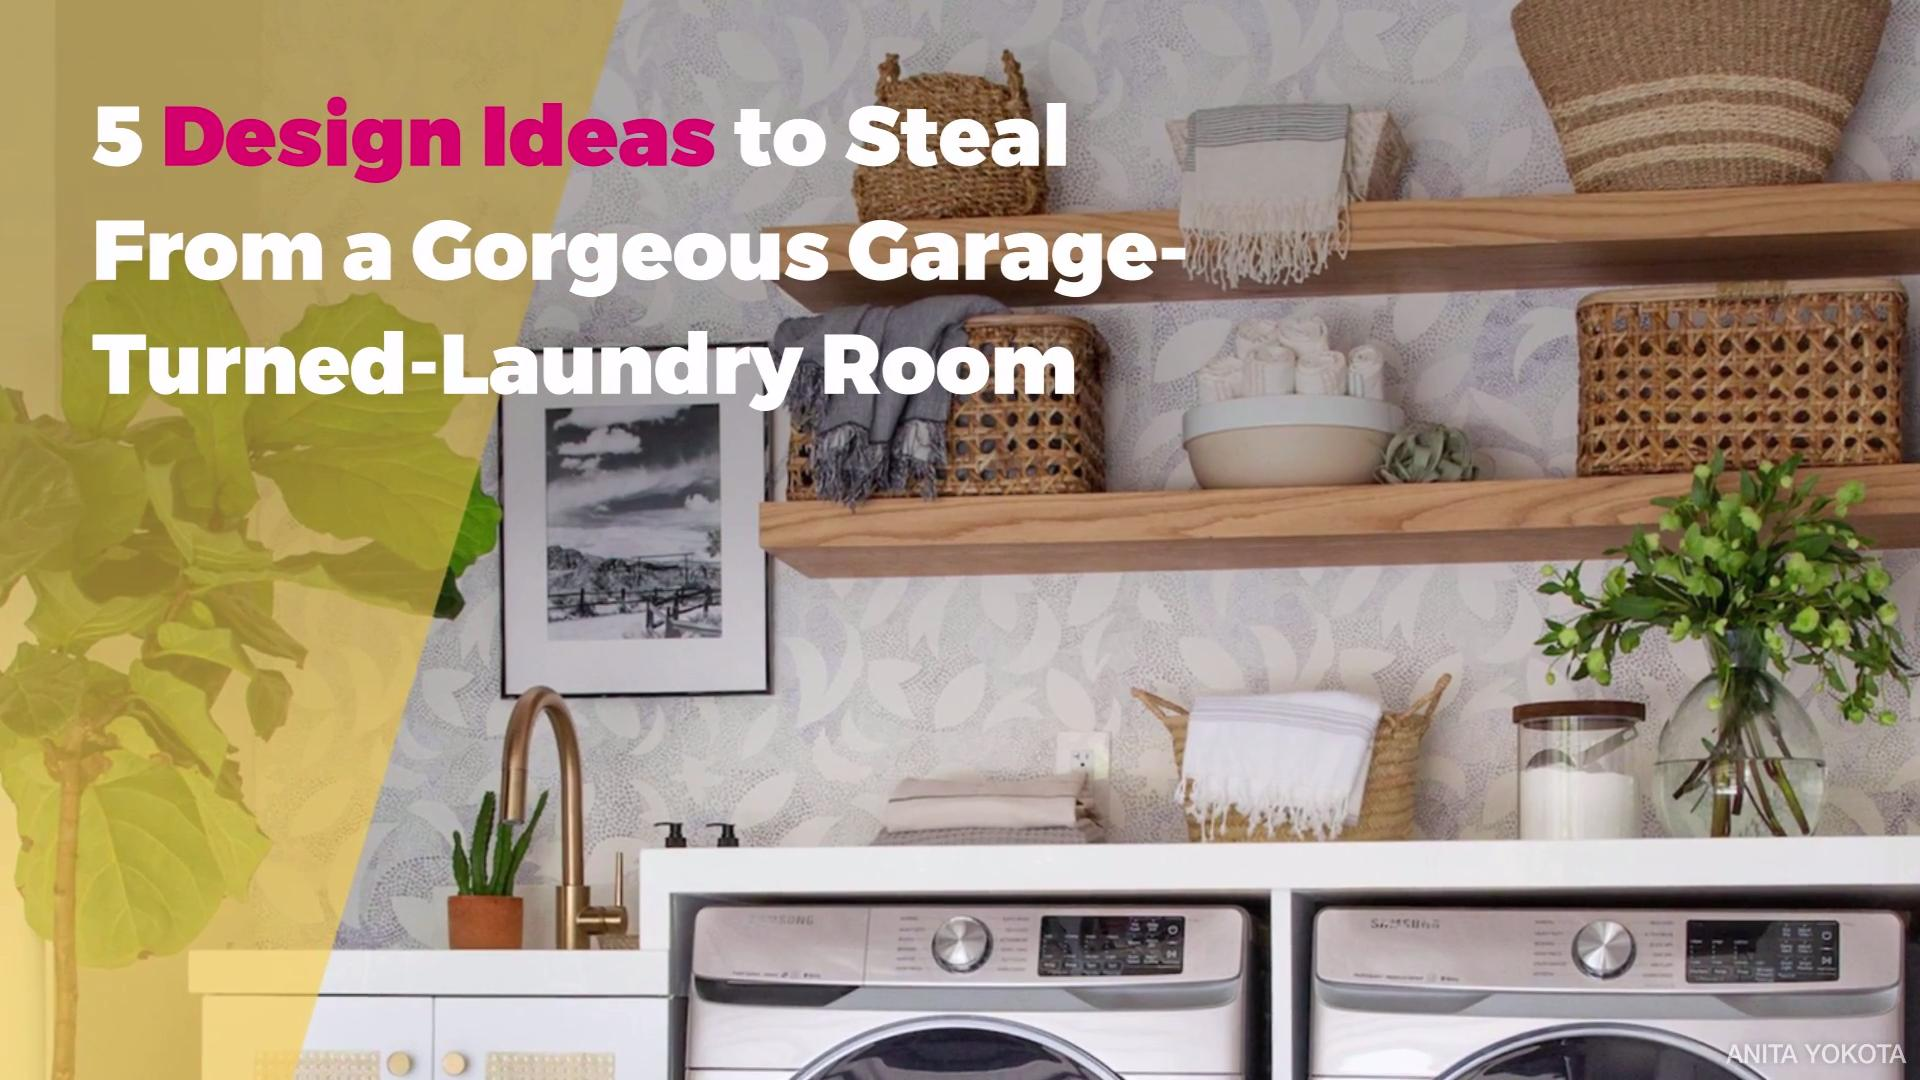 Design Ideas From a Gorgeous Garage-Turned-Laundry Room ...